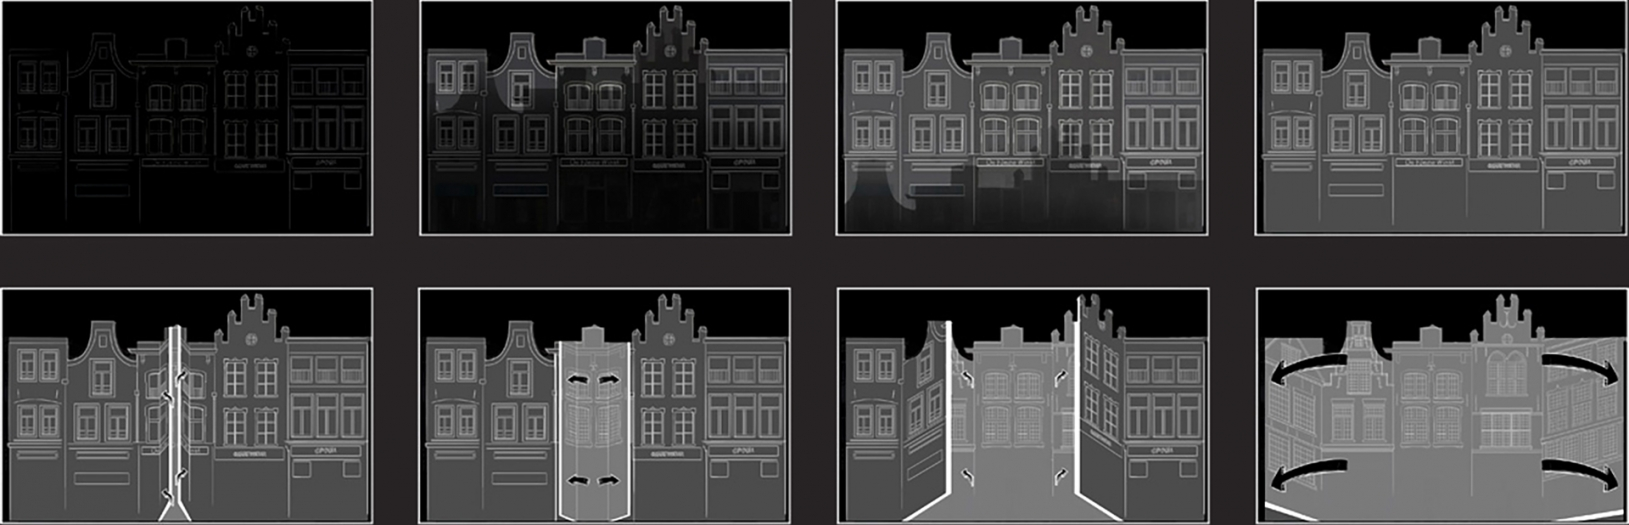 Storyboards for the Jeroen Bosch project by Mr.Beam studio